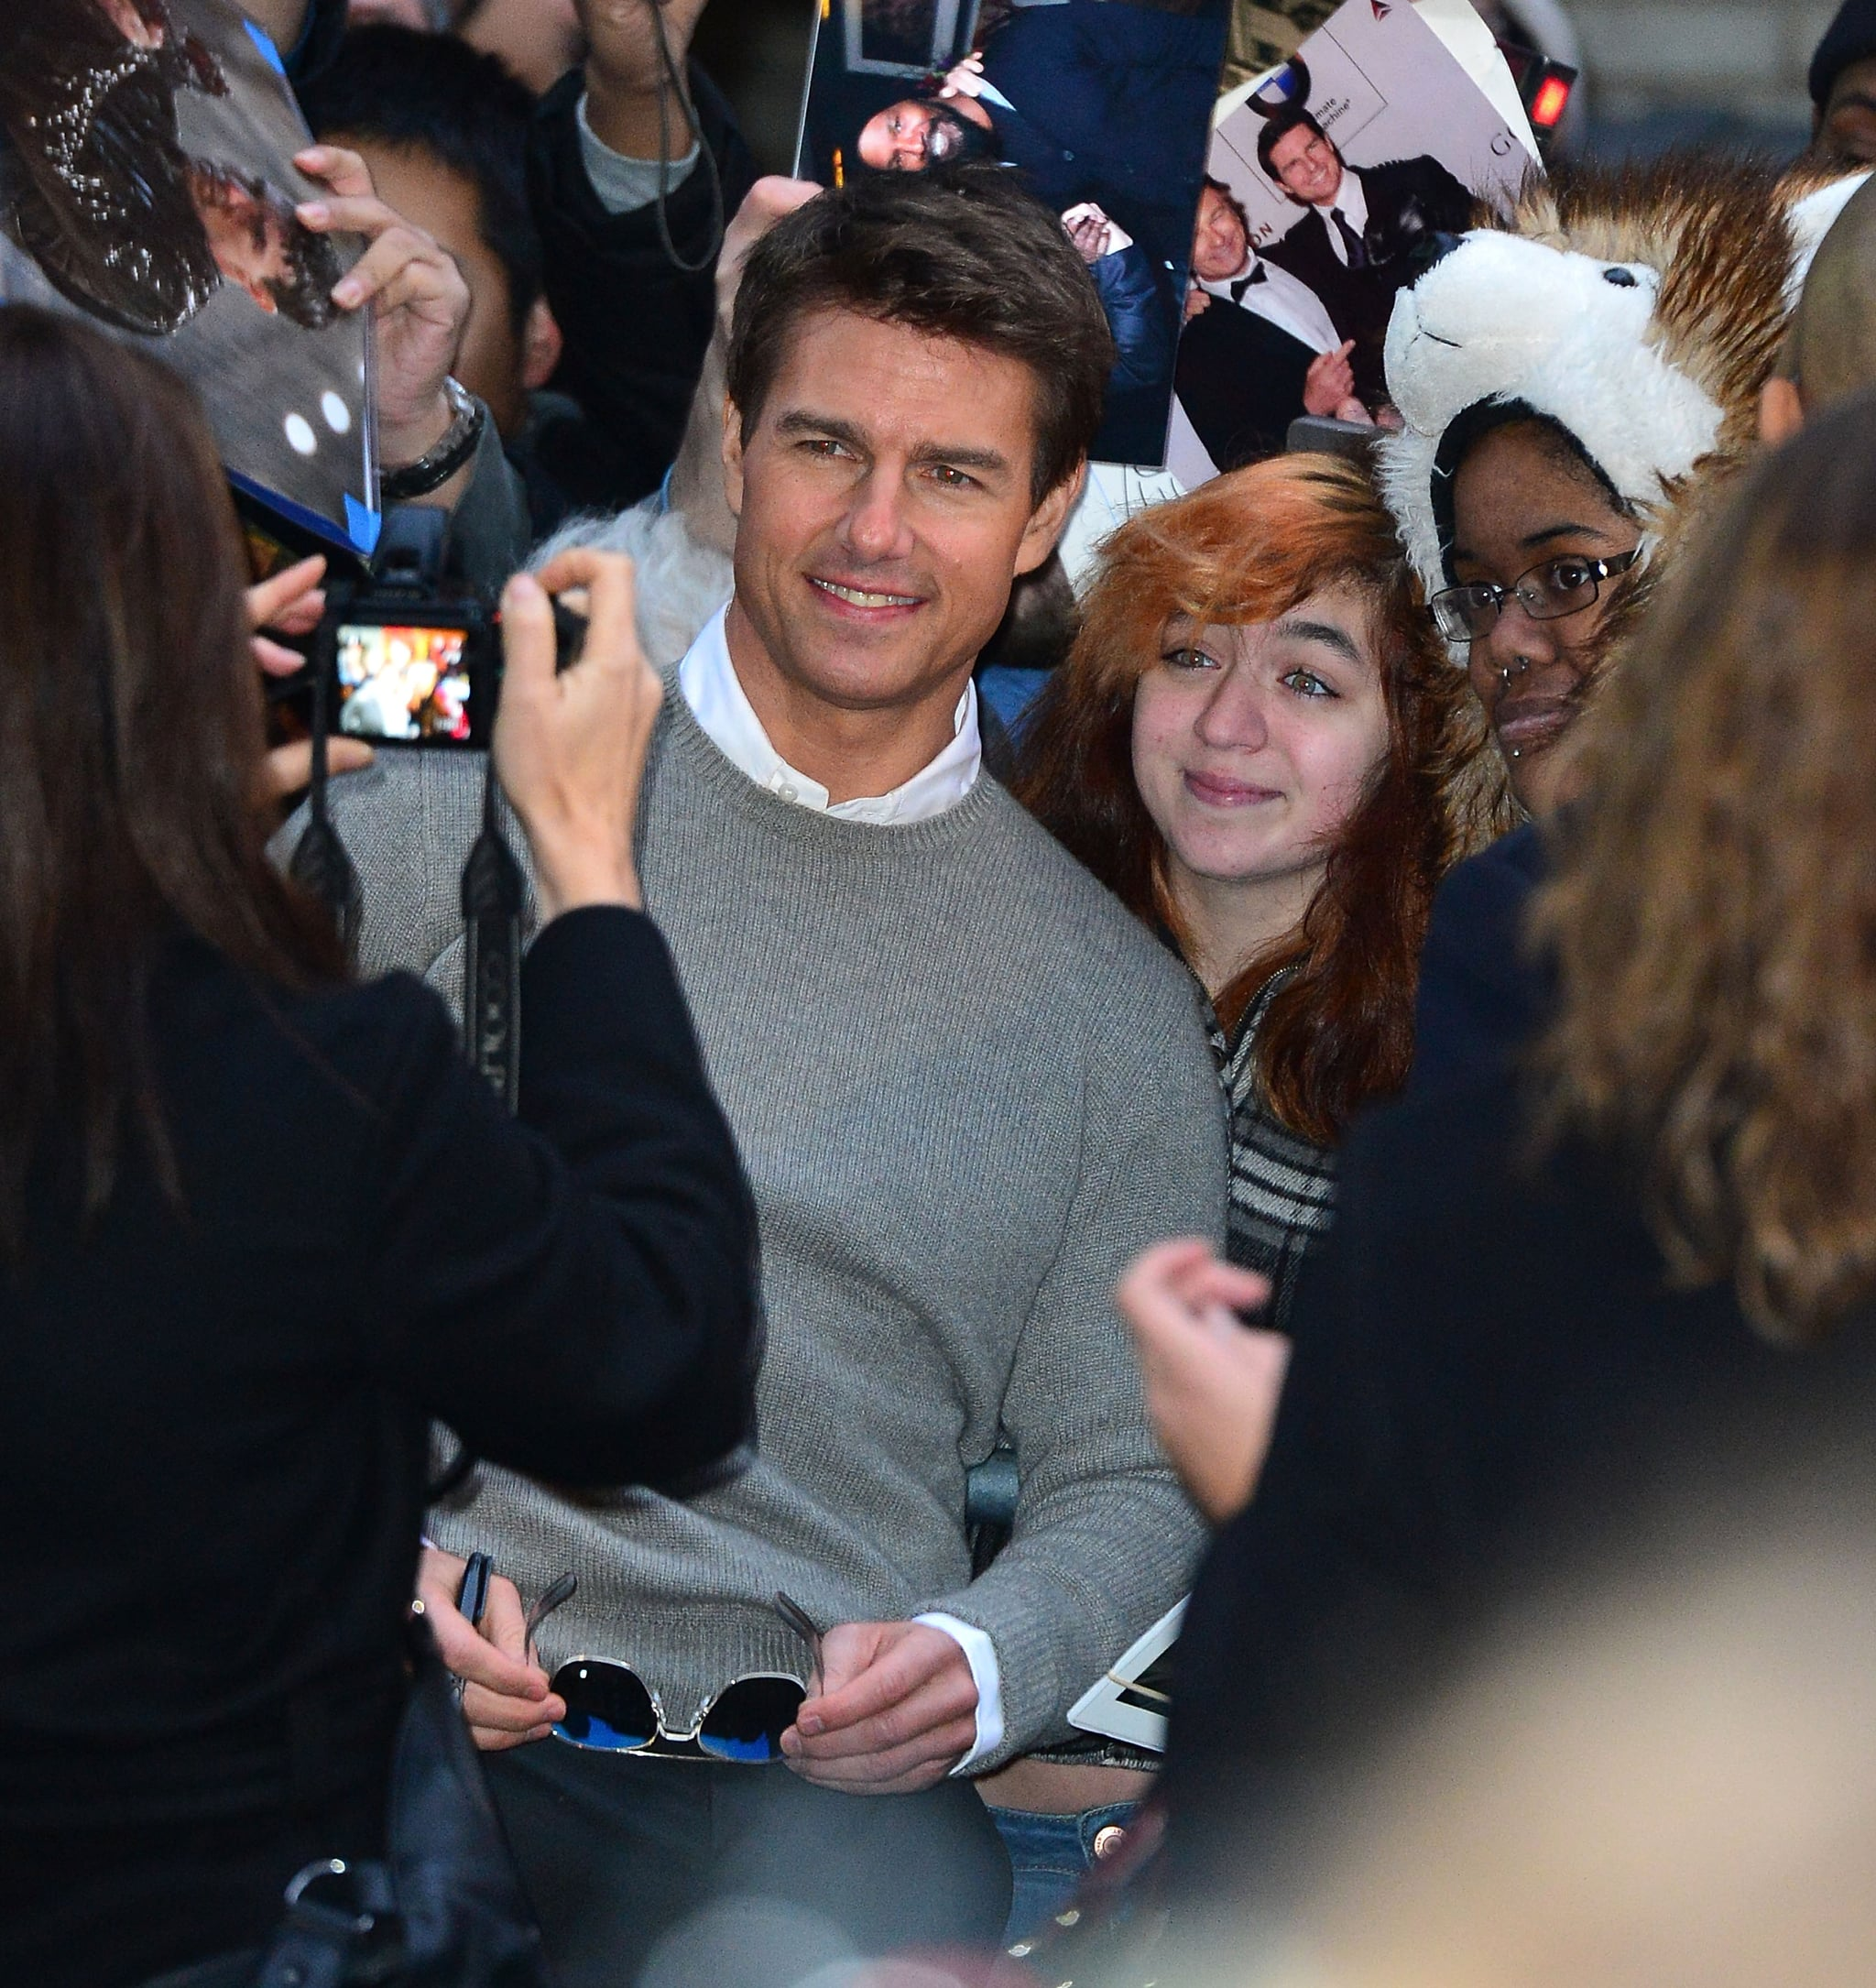 Tom Cruise posed with fans.